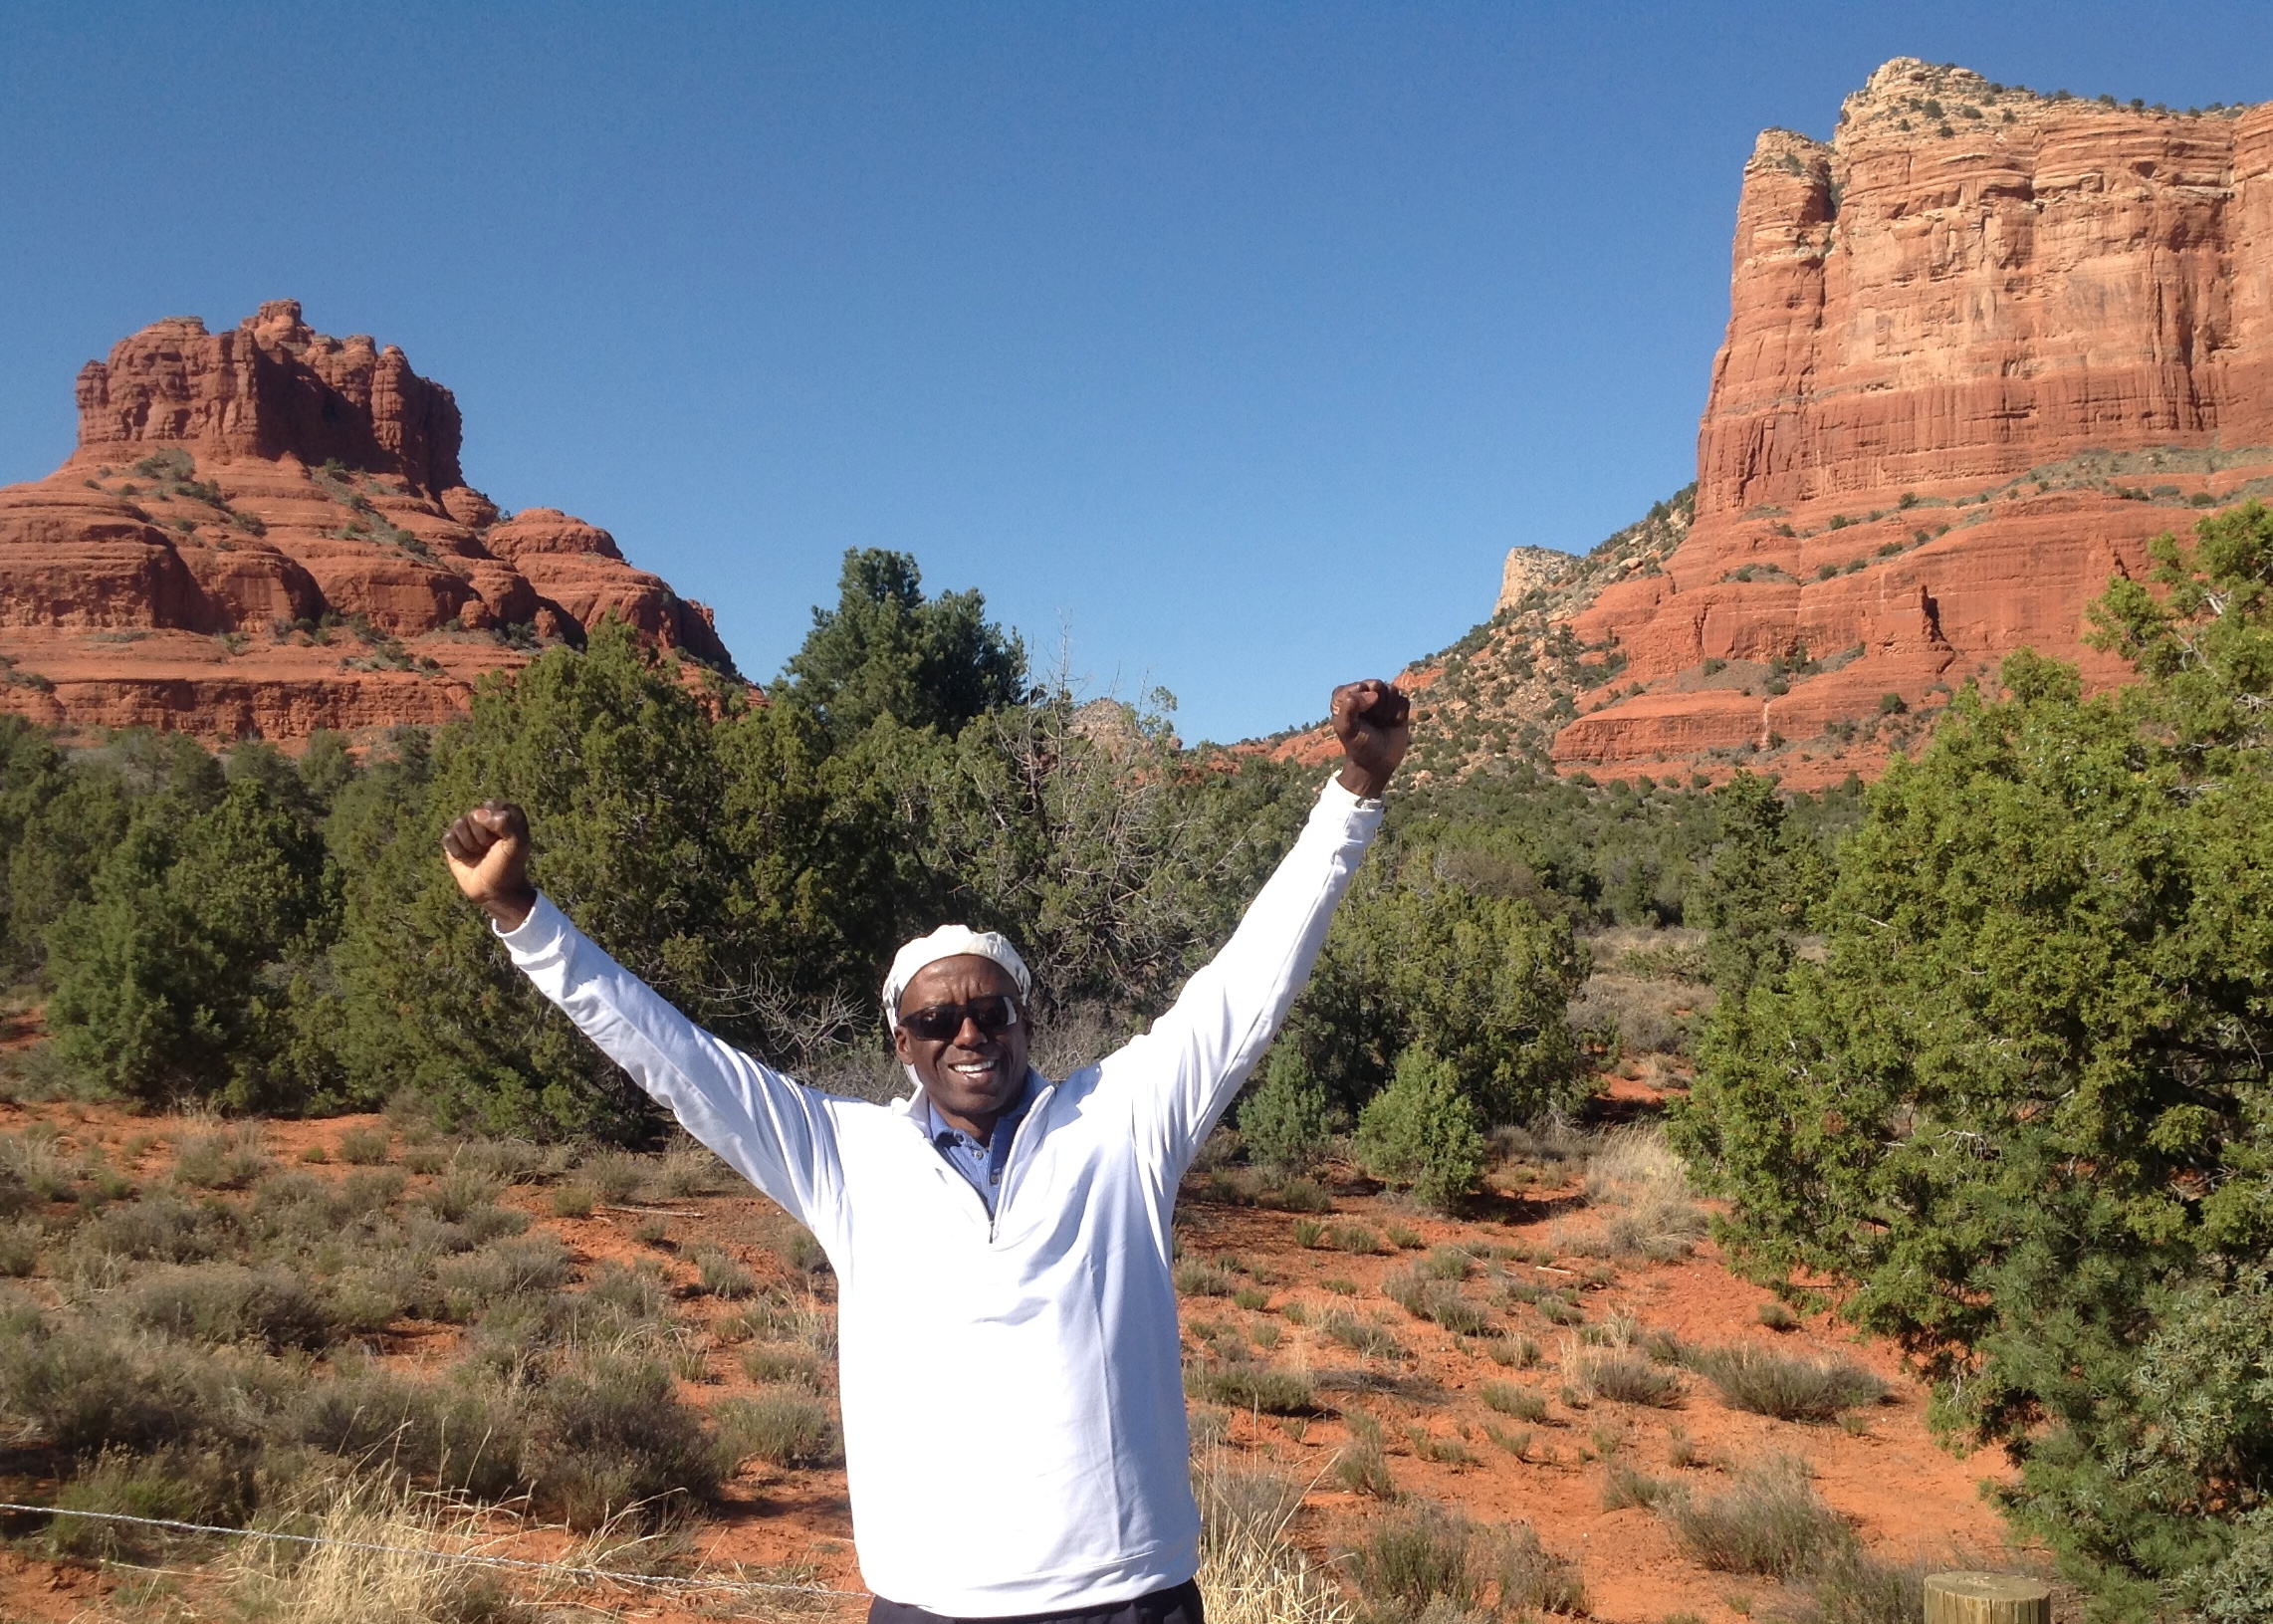 Clarence at Sedona - Bell Rock Vortex